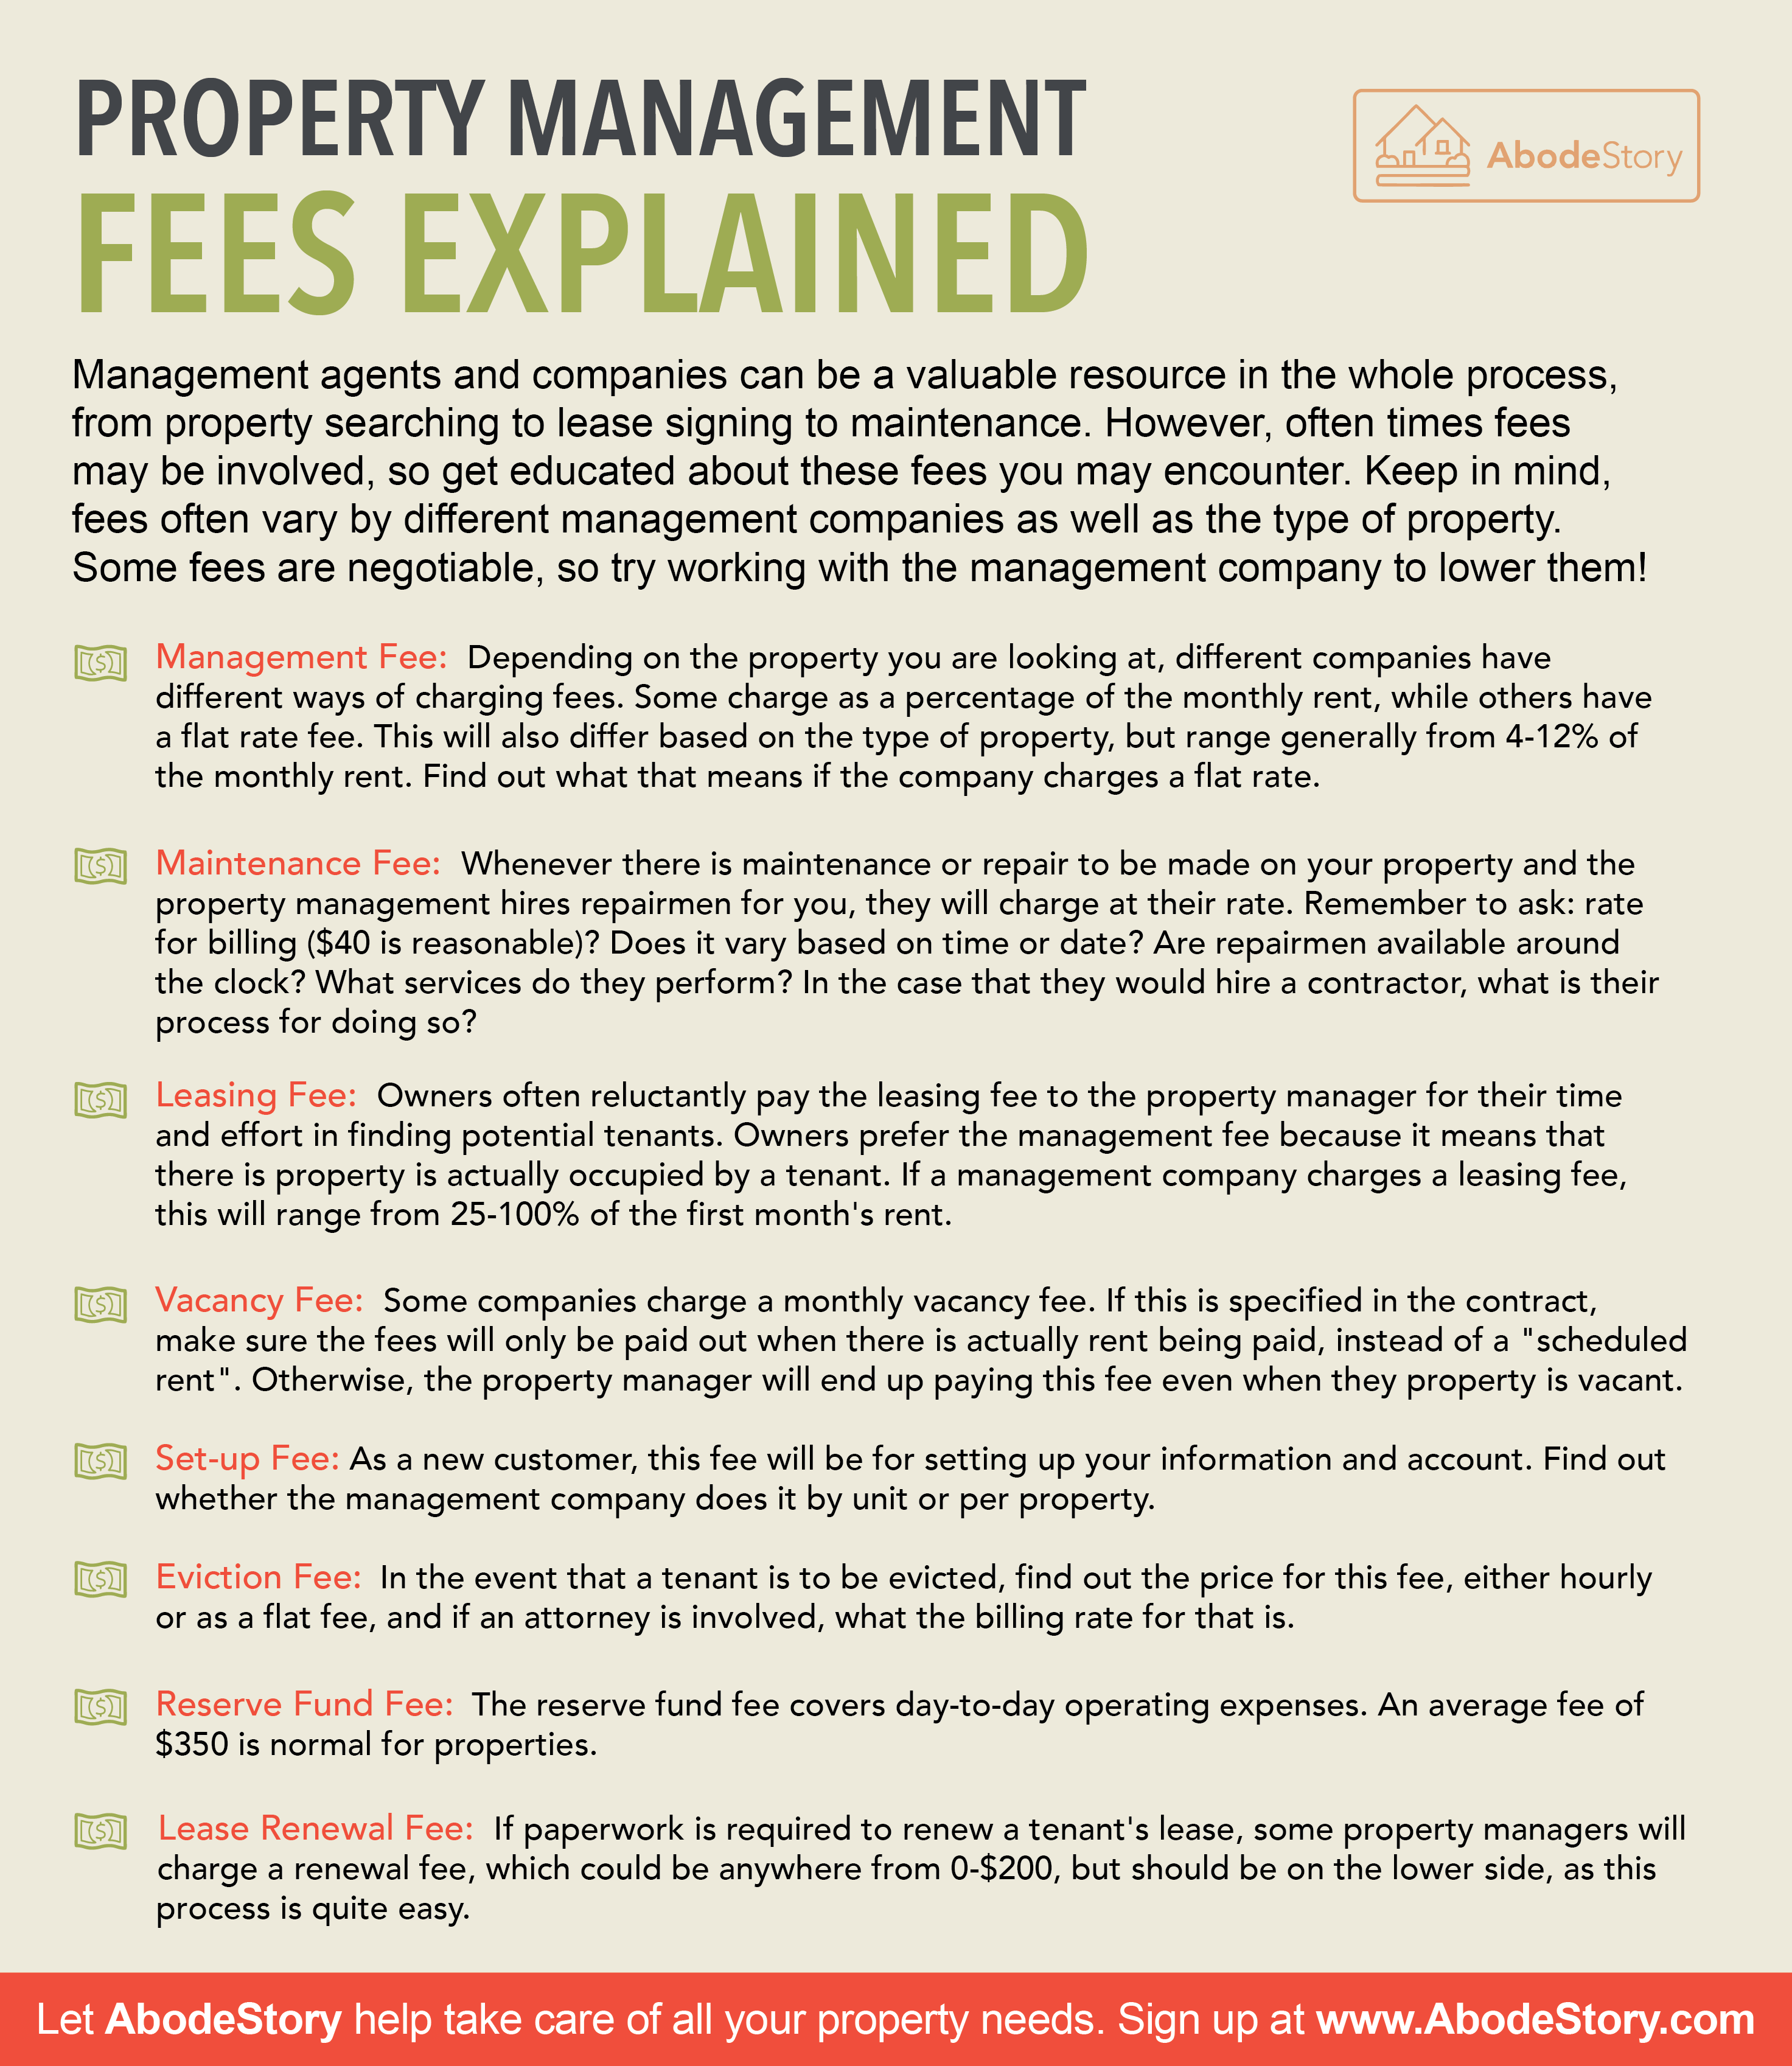 Property Fee tips